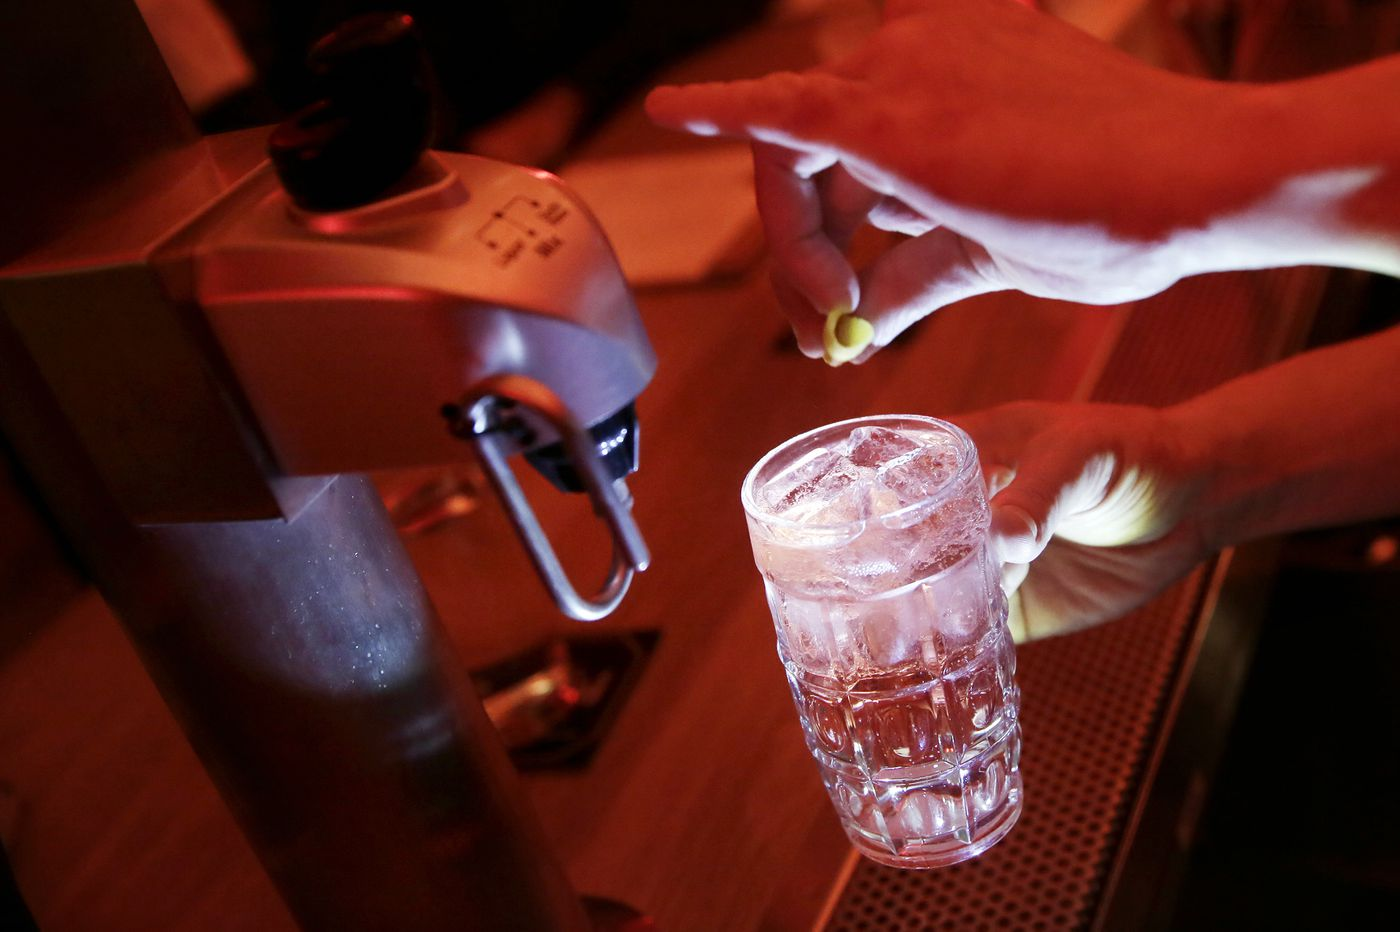 Fizz factor with a machine assist gives Nunu's whisky highballs a refreshing twist on draft